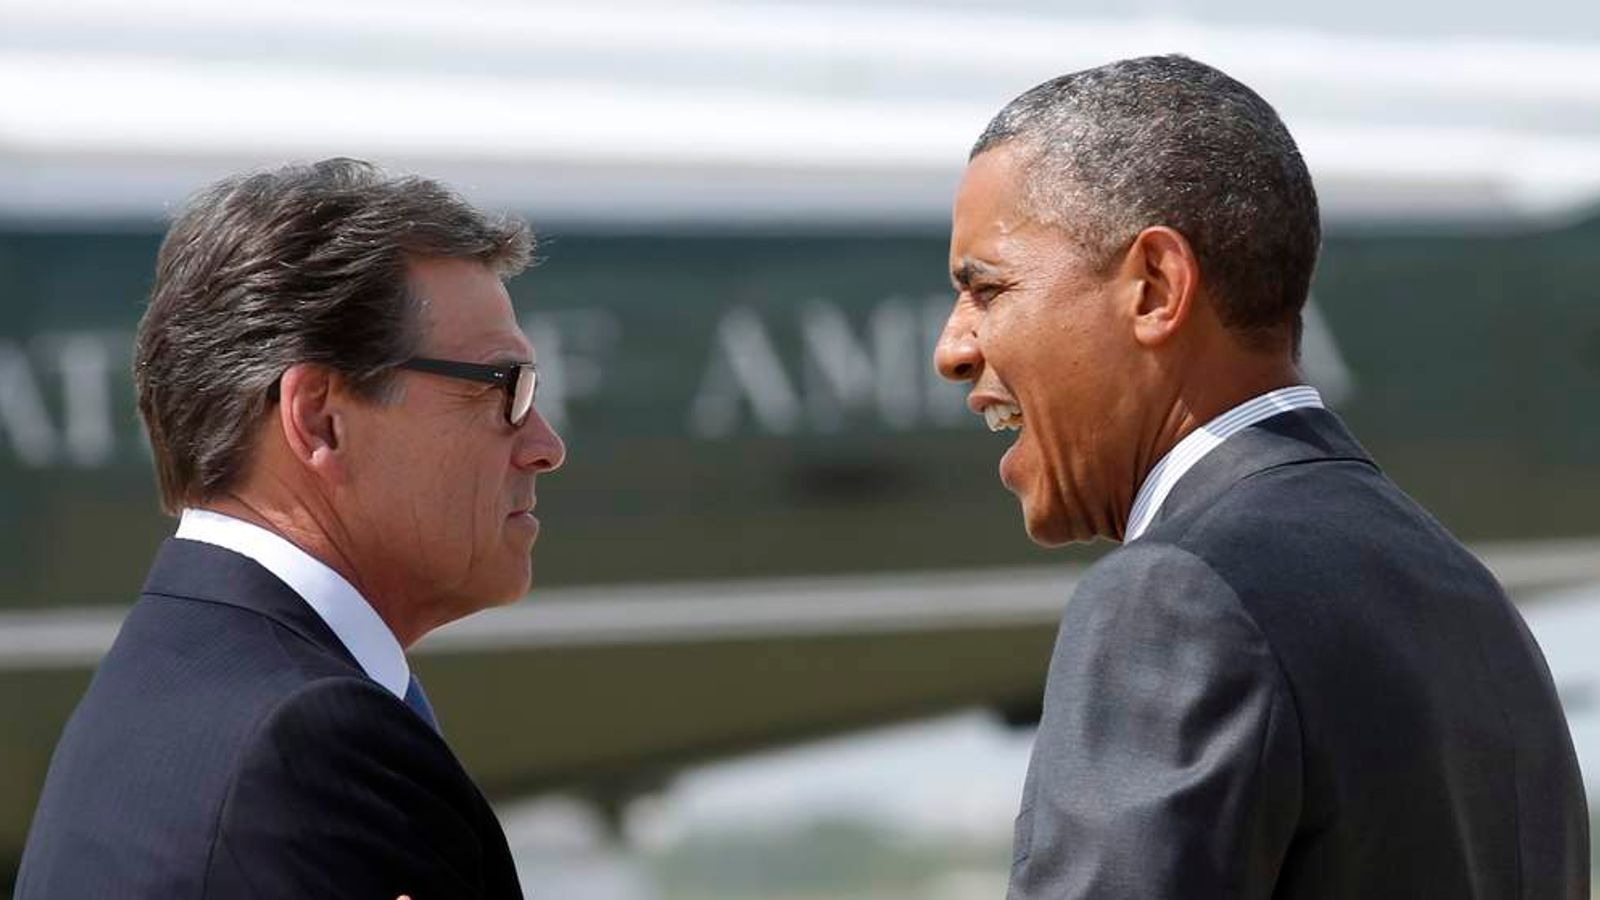 U.S. President Obama is greeted by Texas Governor Perry upon Obama's arrival in Dallas